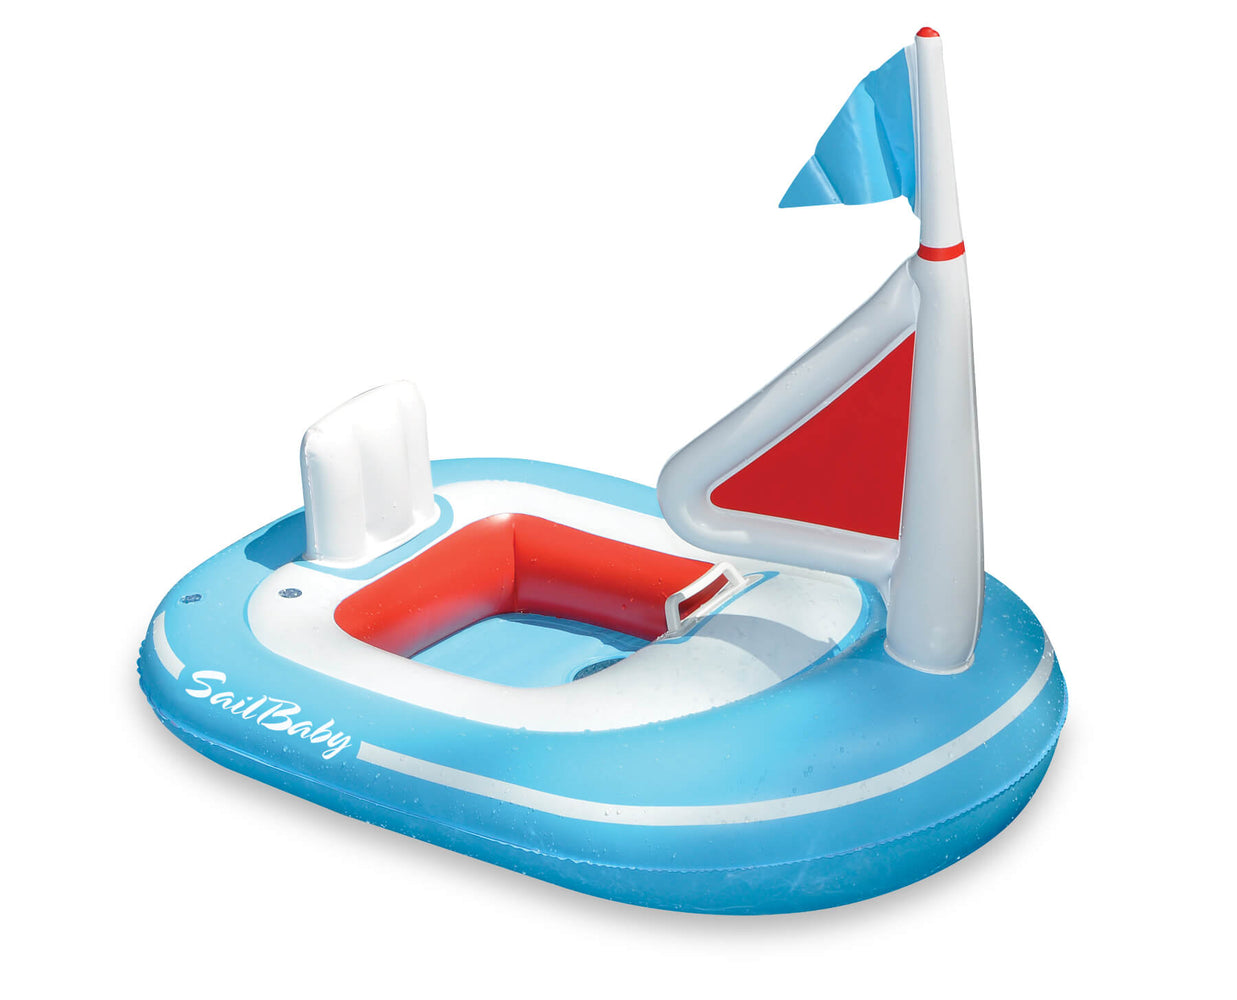 SailBaby Baby Seat Pool Float